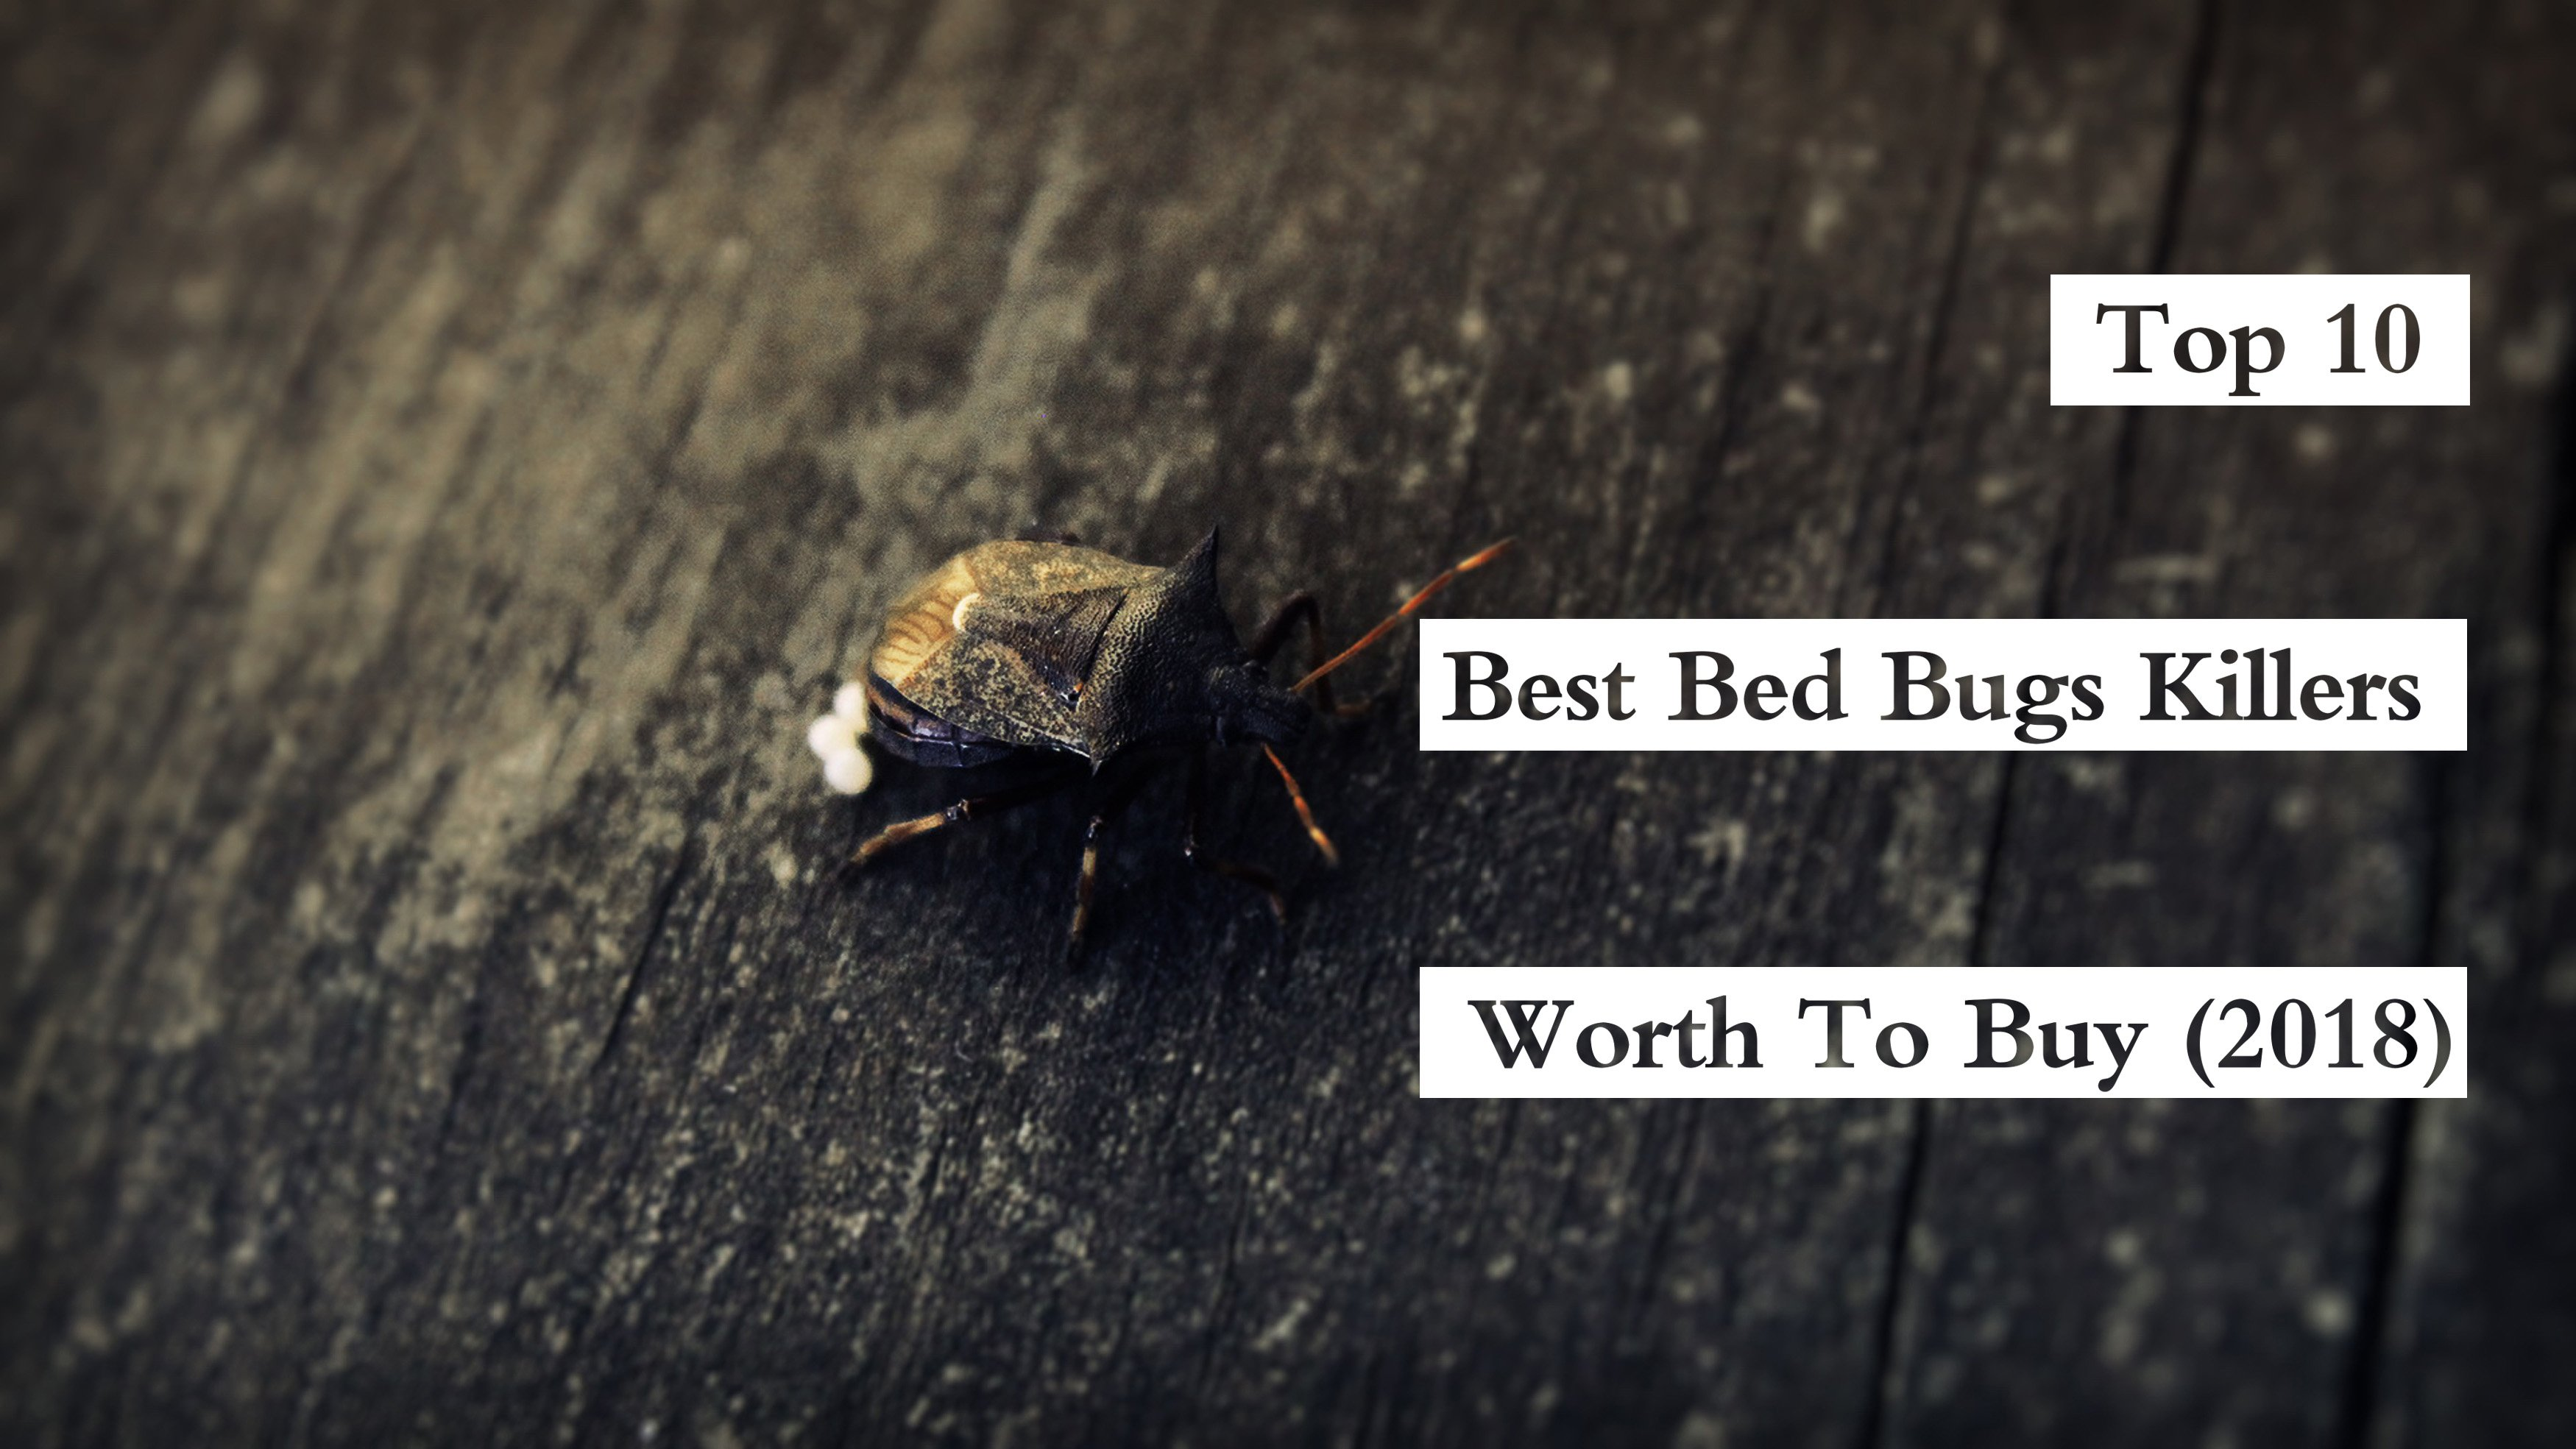 Top 7 Best Bed Bug Killers Worth To Buy (2019) - Pest Wiki